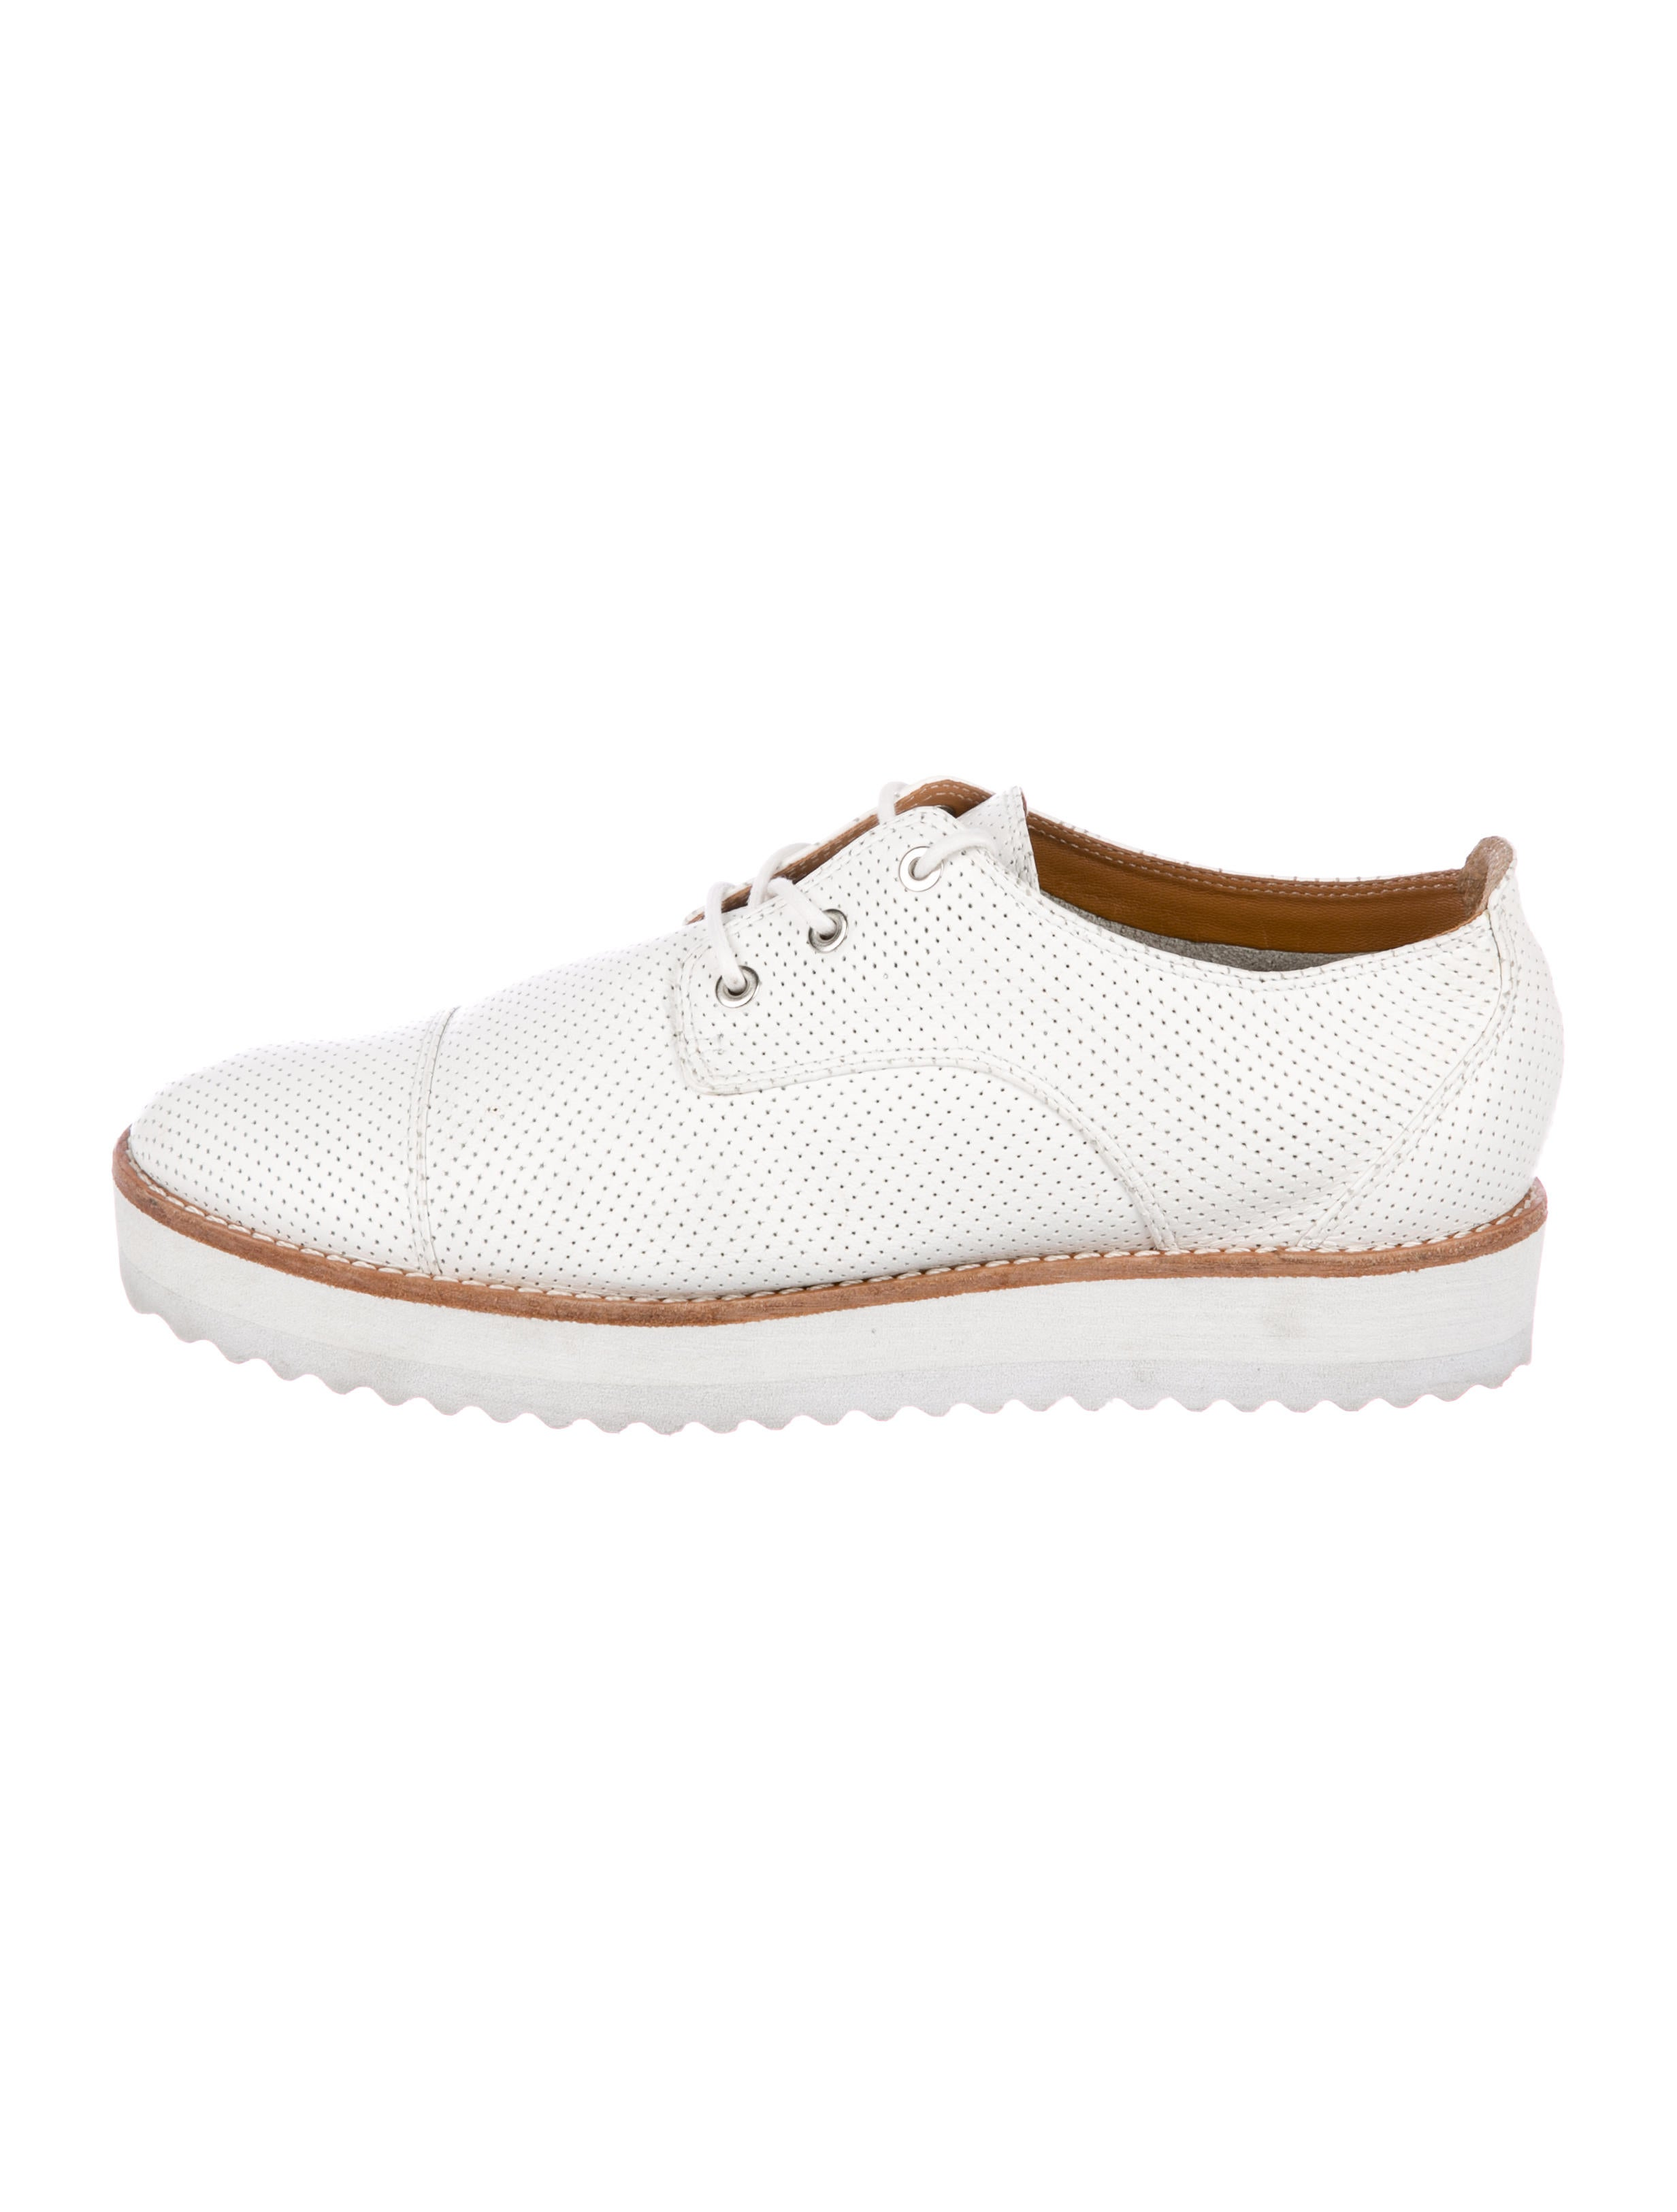 Zimmermann Perforated Leather Oxfords buy cheap lowest price cheap sale great deals cheap sale fake shipping outlet store online i5bgzo